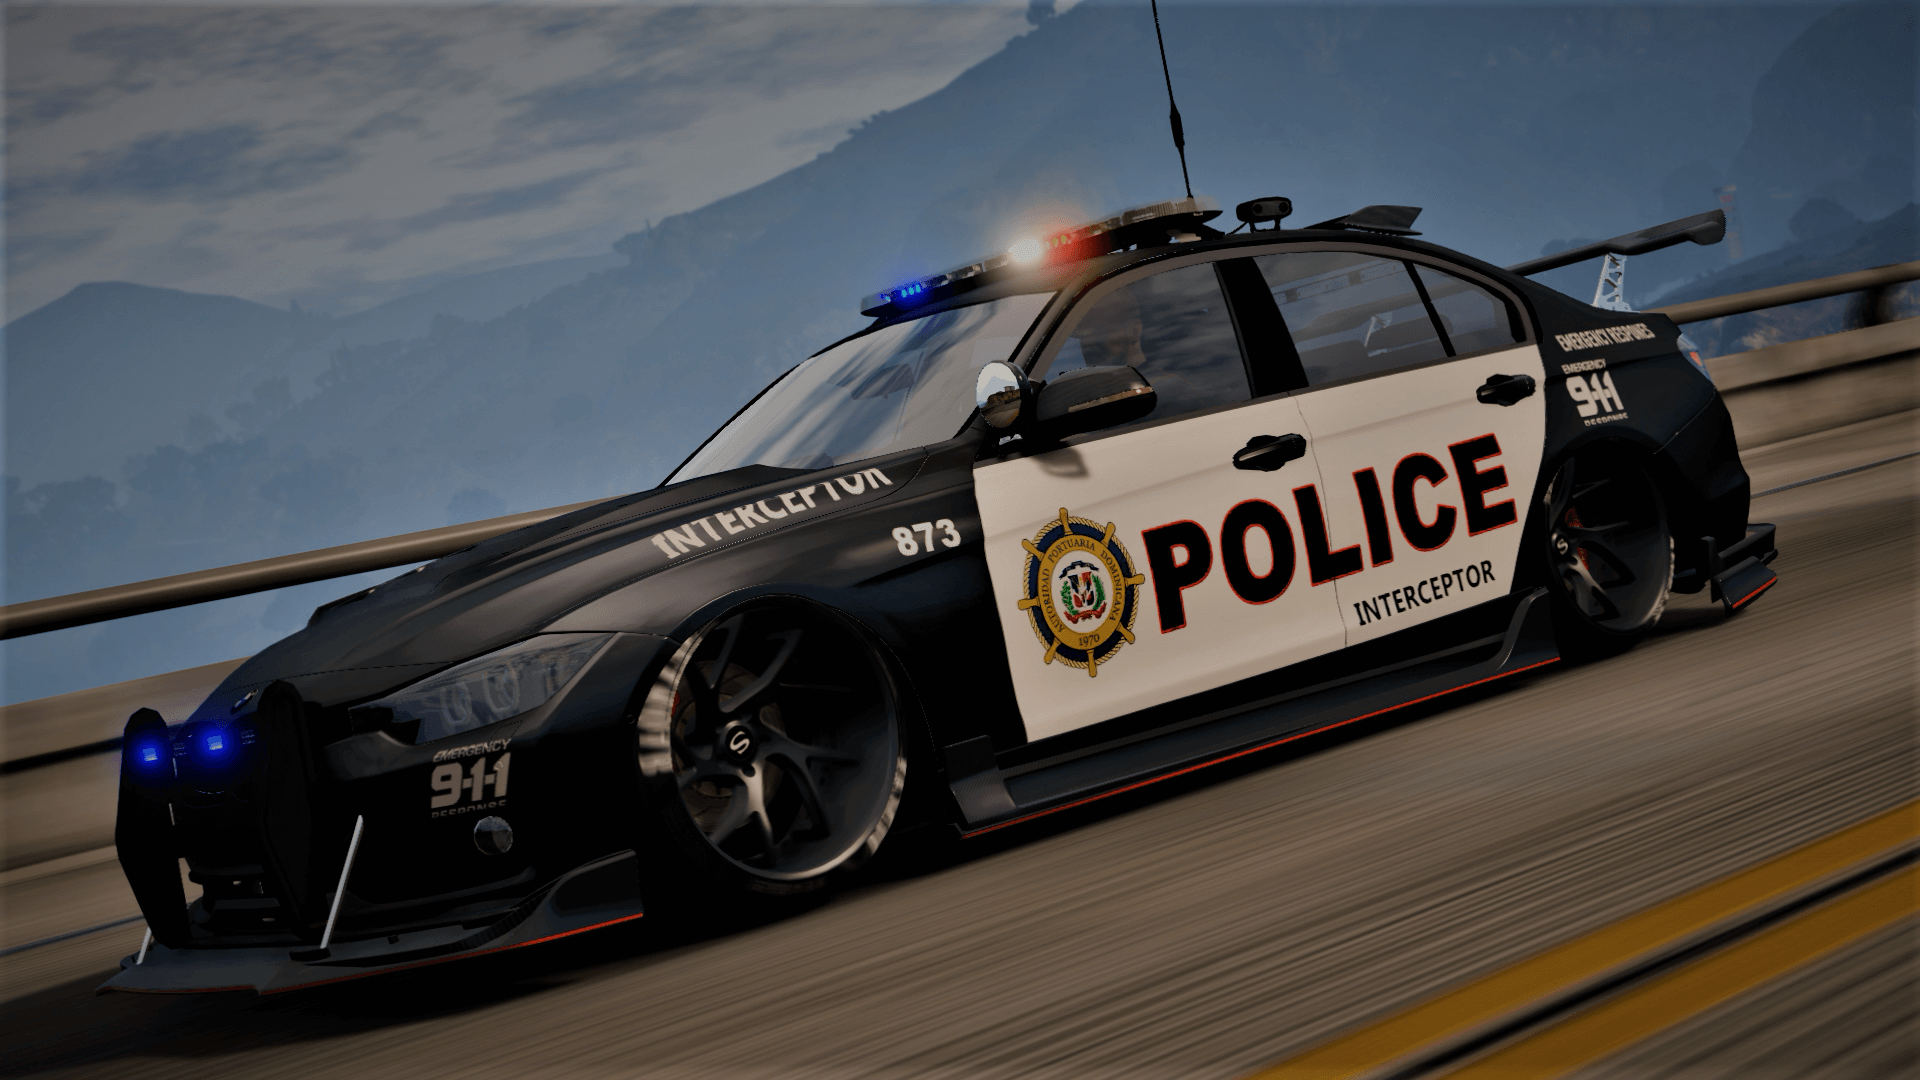 Bmw Exterior: BMW 3 F30 Police Crazy Exterior [Add-On] [ELS] [Template